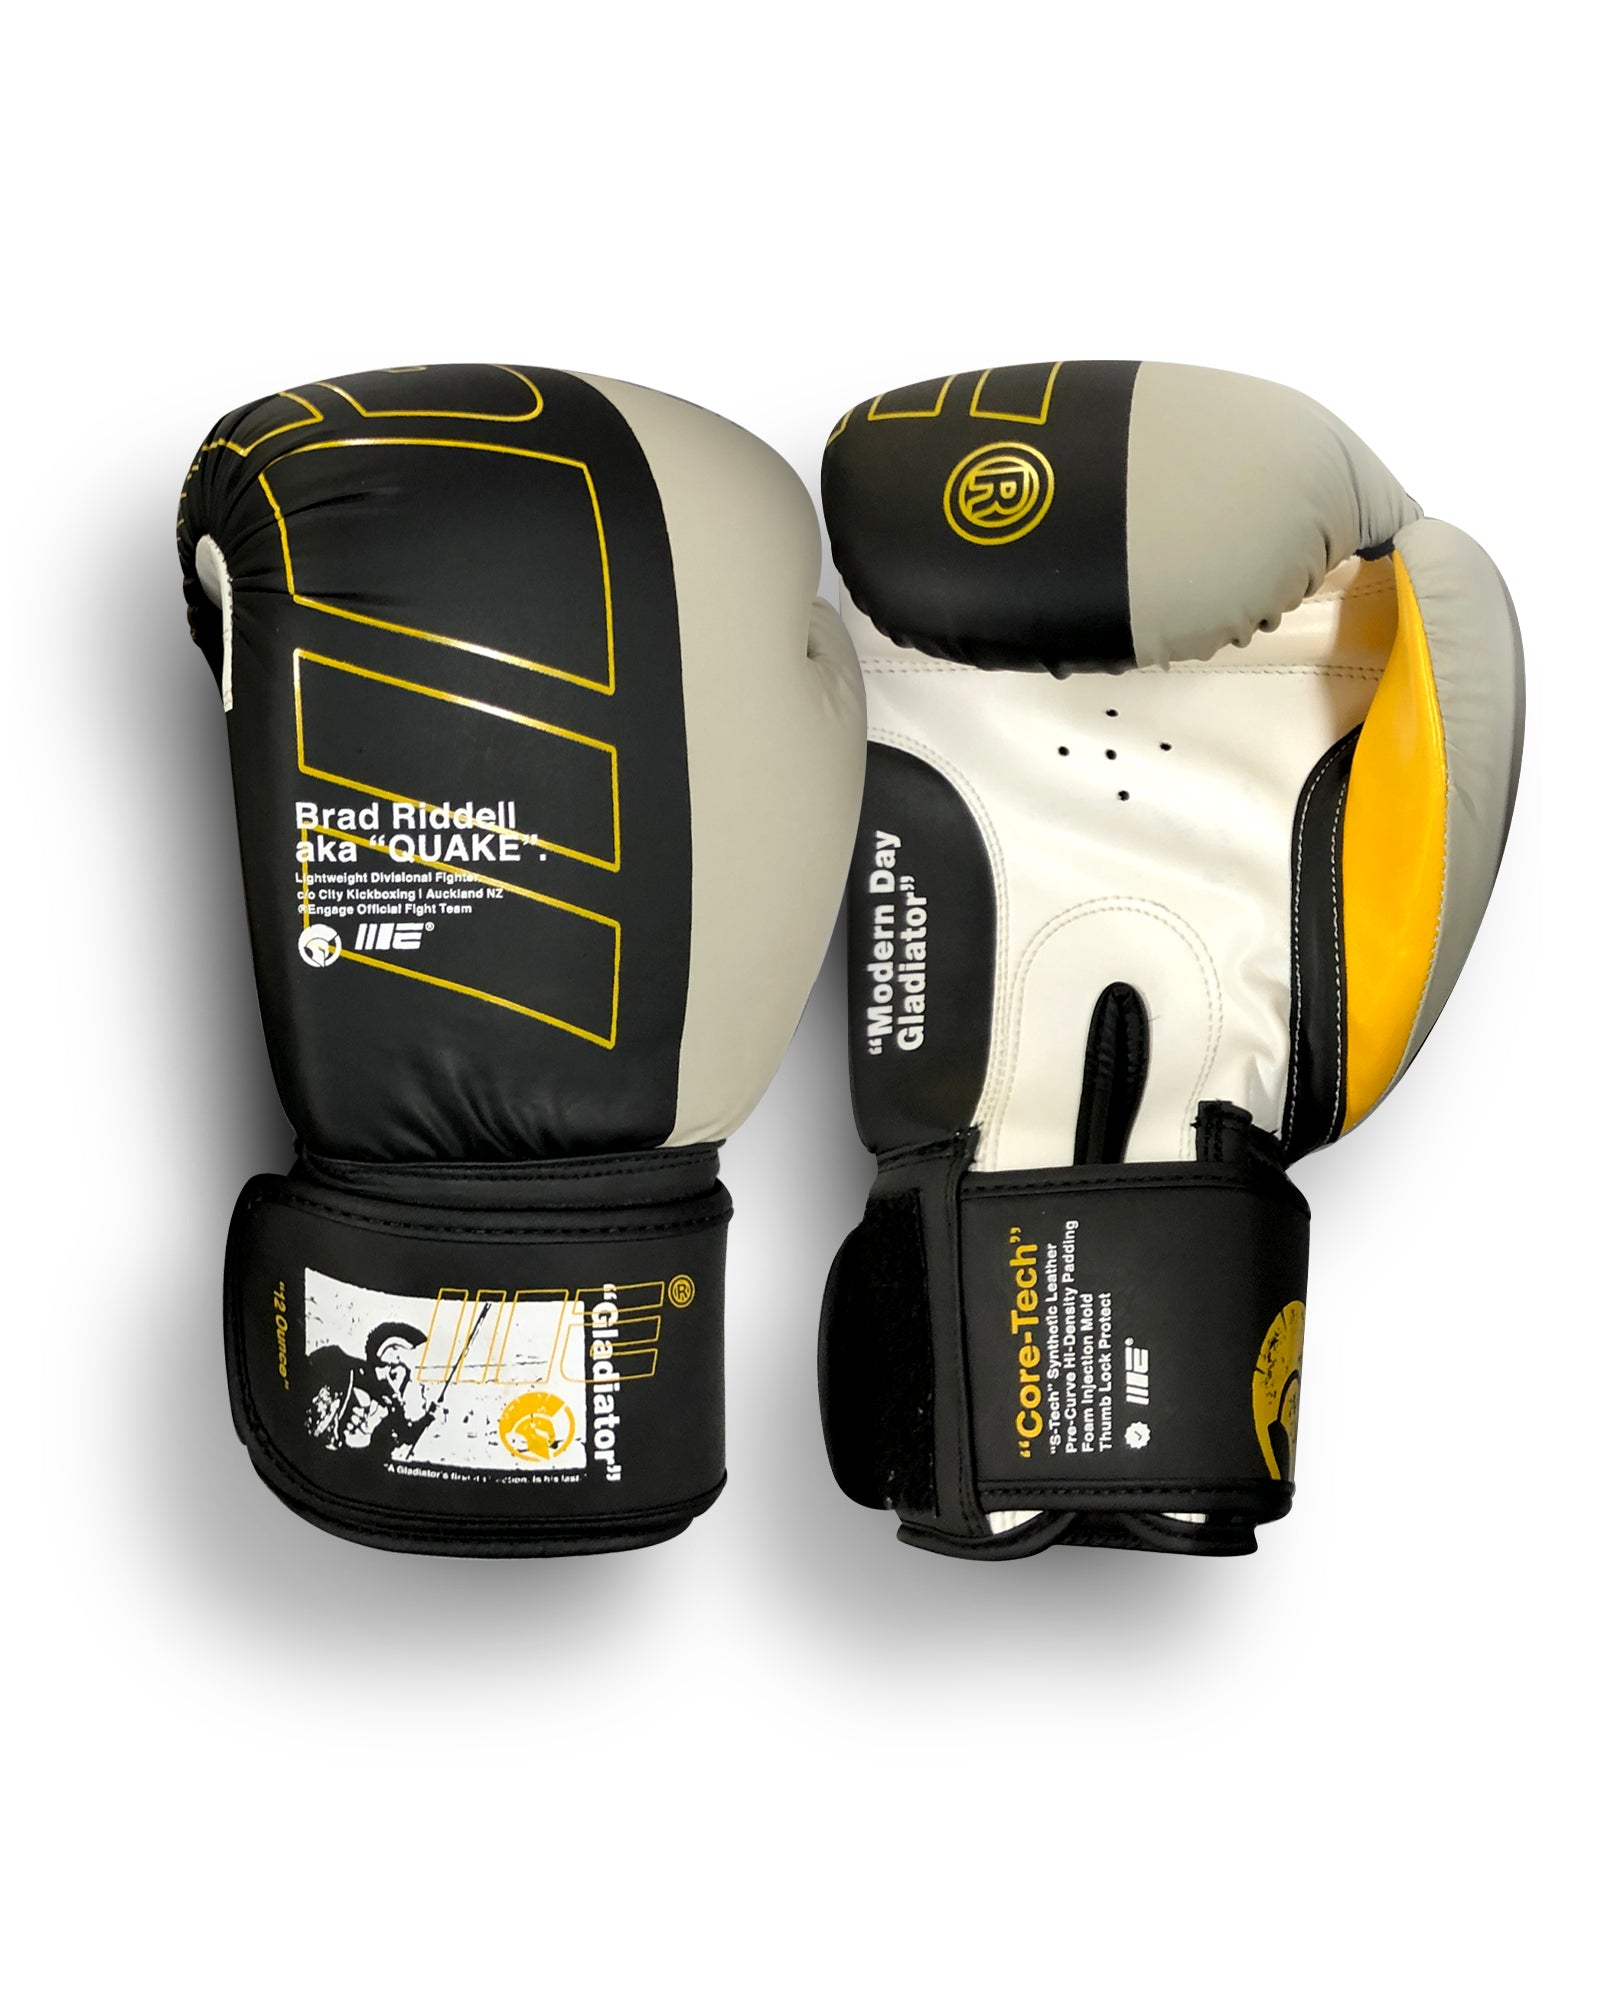 Modern Day Gladiator Brad Quake Riddell Boxing Gloves